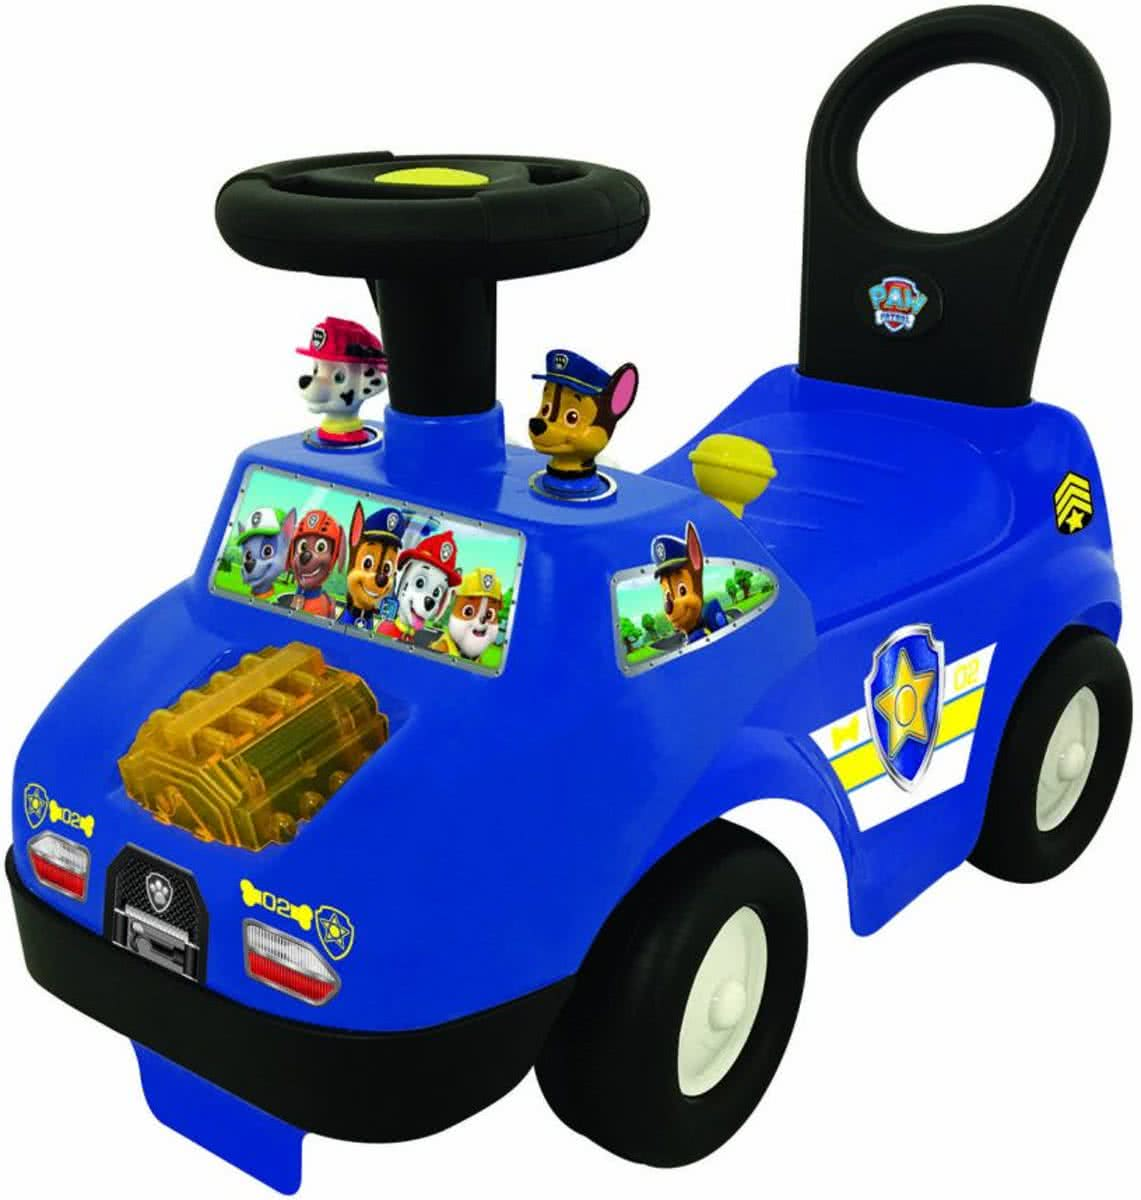 PAW PATROL CHASE POLICE RIDEON